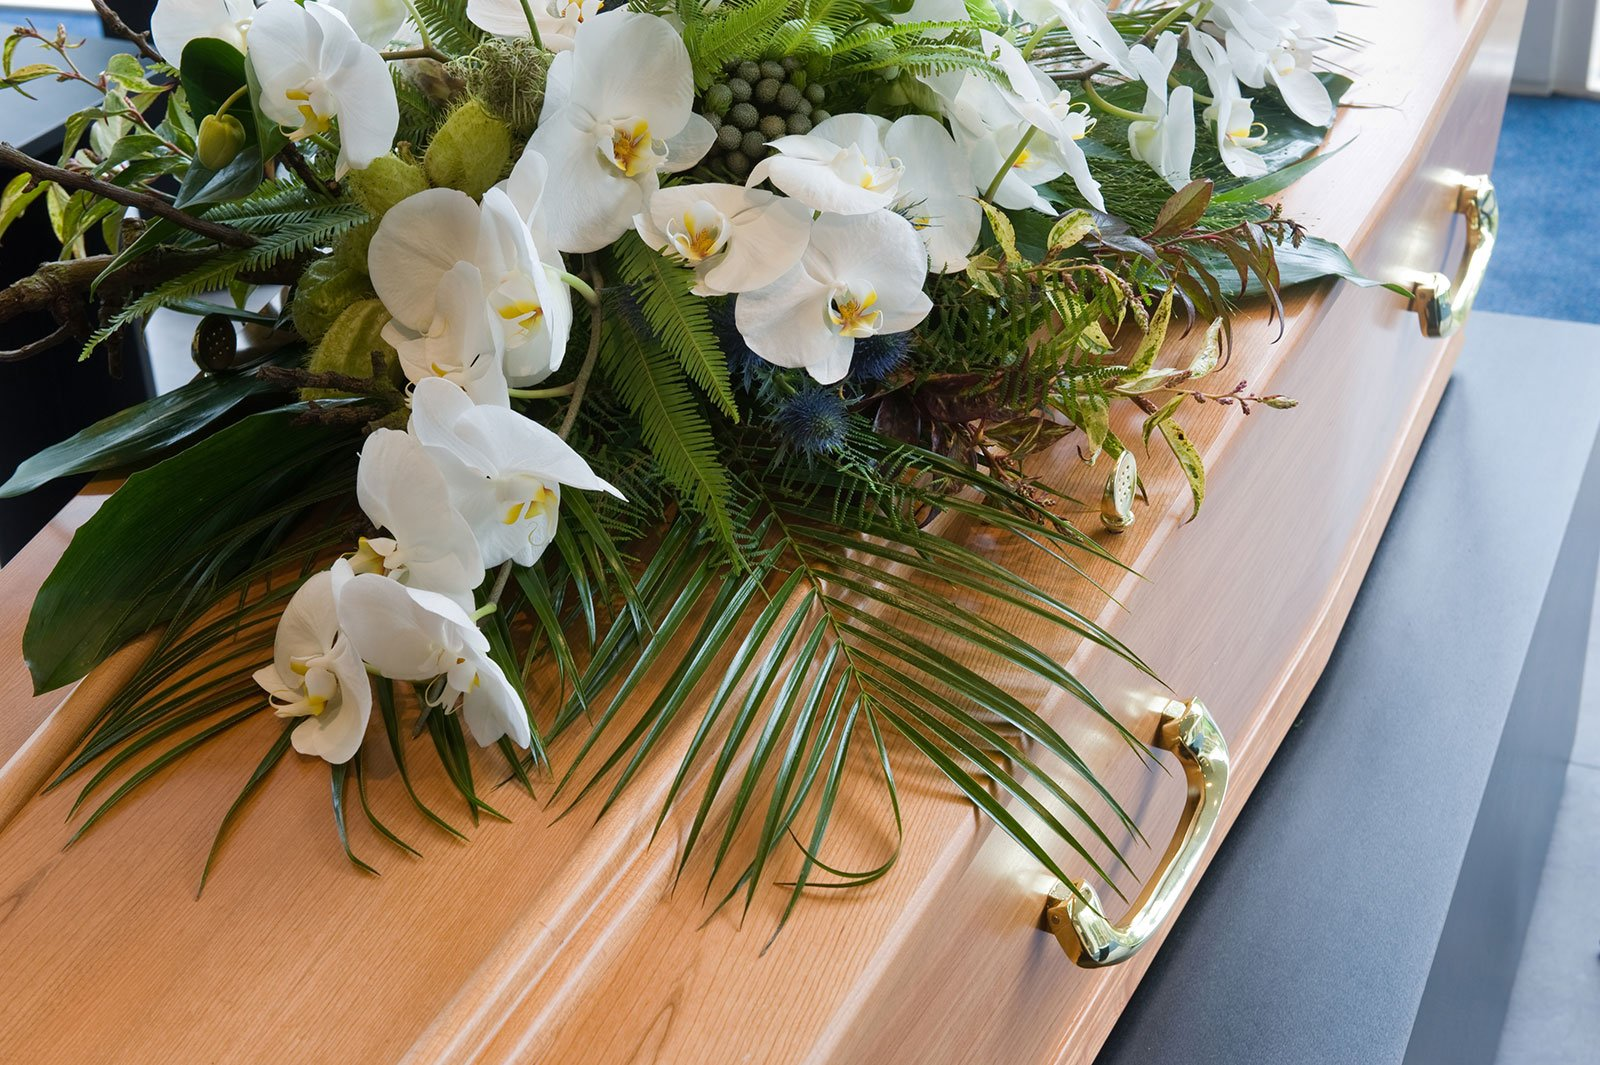 Planning all aspects of a funeral - In certain circumstances a death may be referred to the coroner. This means you will not be issued with the Medical Certificate of Cause of Death immediately and will not be able to register the death until the coroner gives their approval. J T Byrne Funeral Directors will be at hand to offer advice and support to minimise your distress at this time.